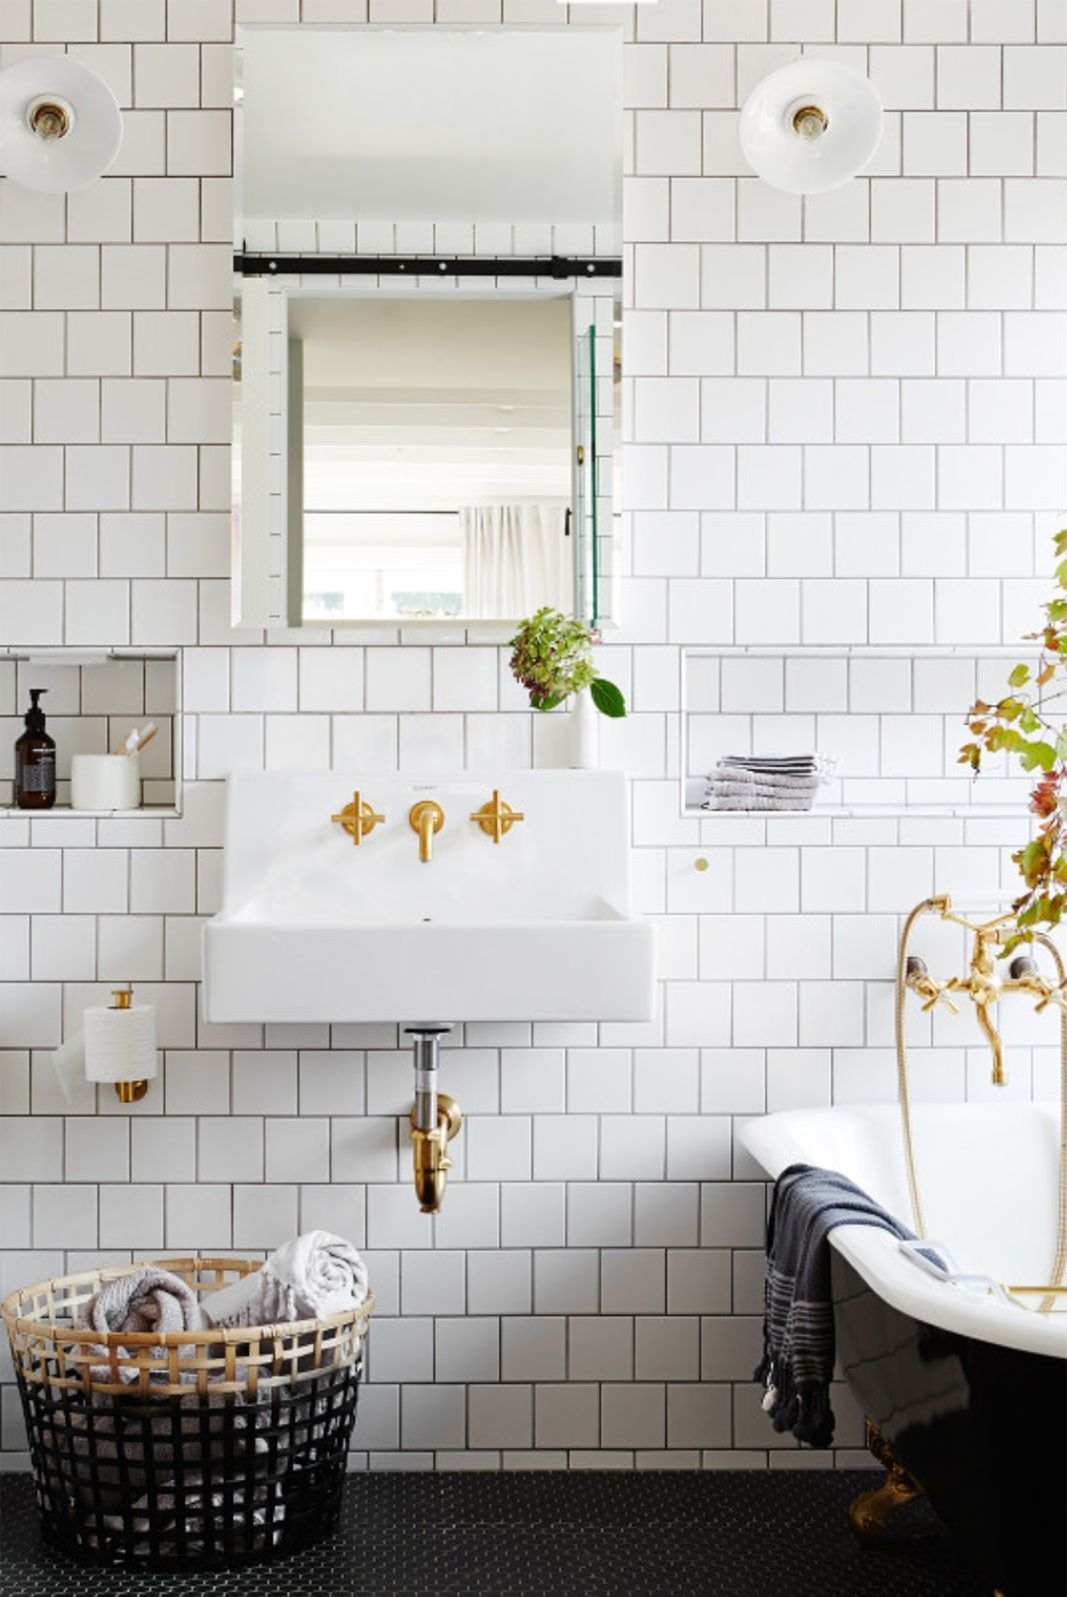 Stylish Bathroom Tiles In 2019 Bathroom Love Bathroom